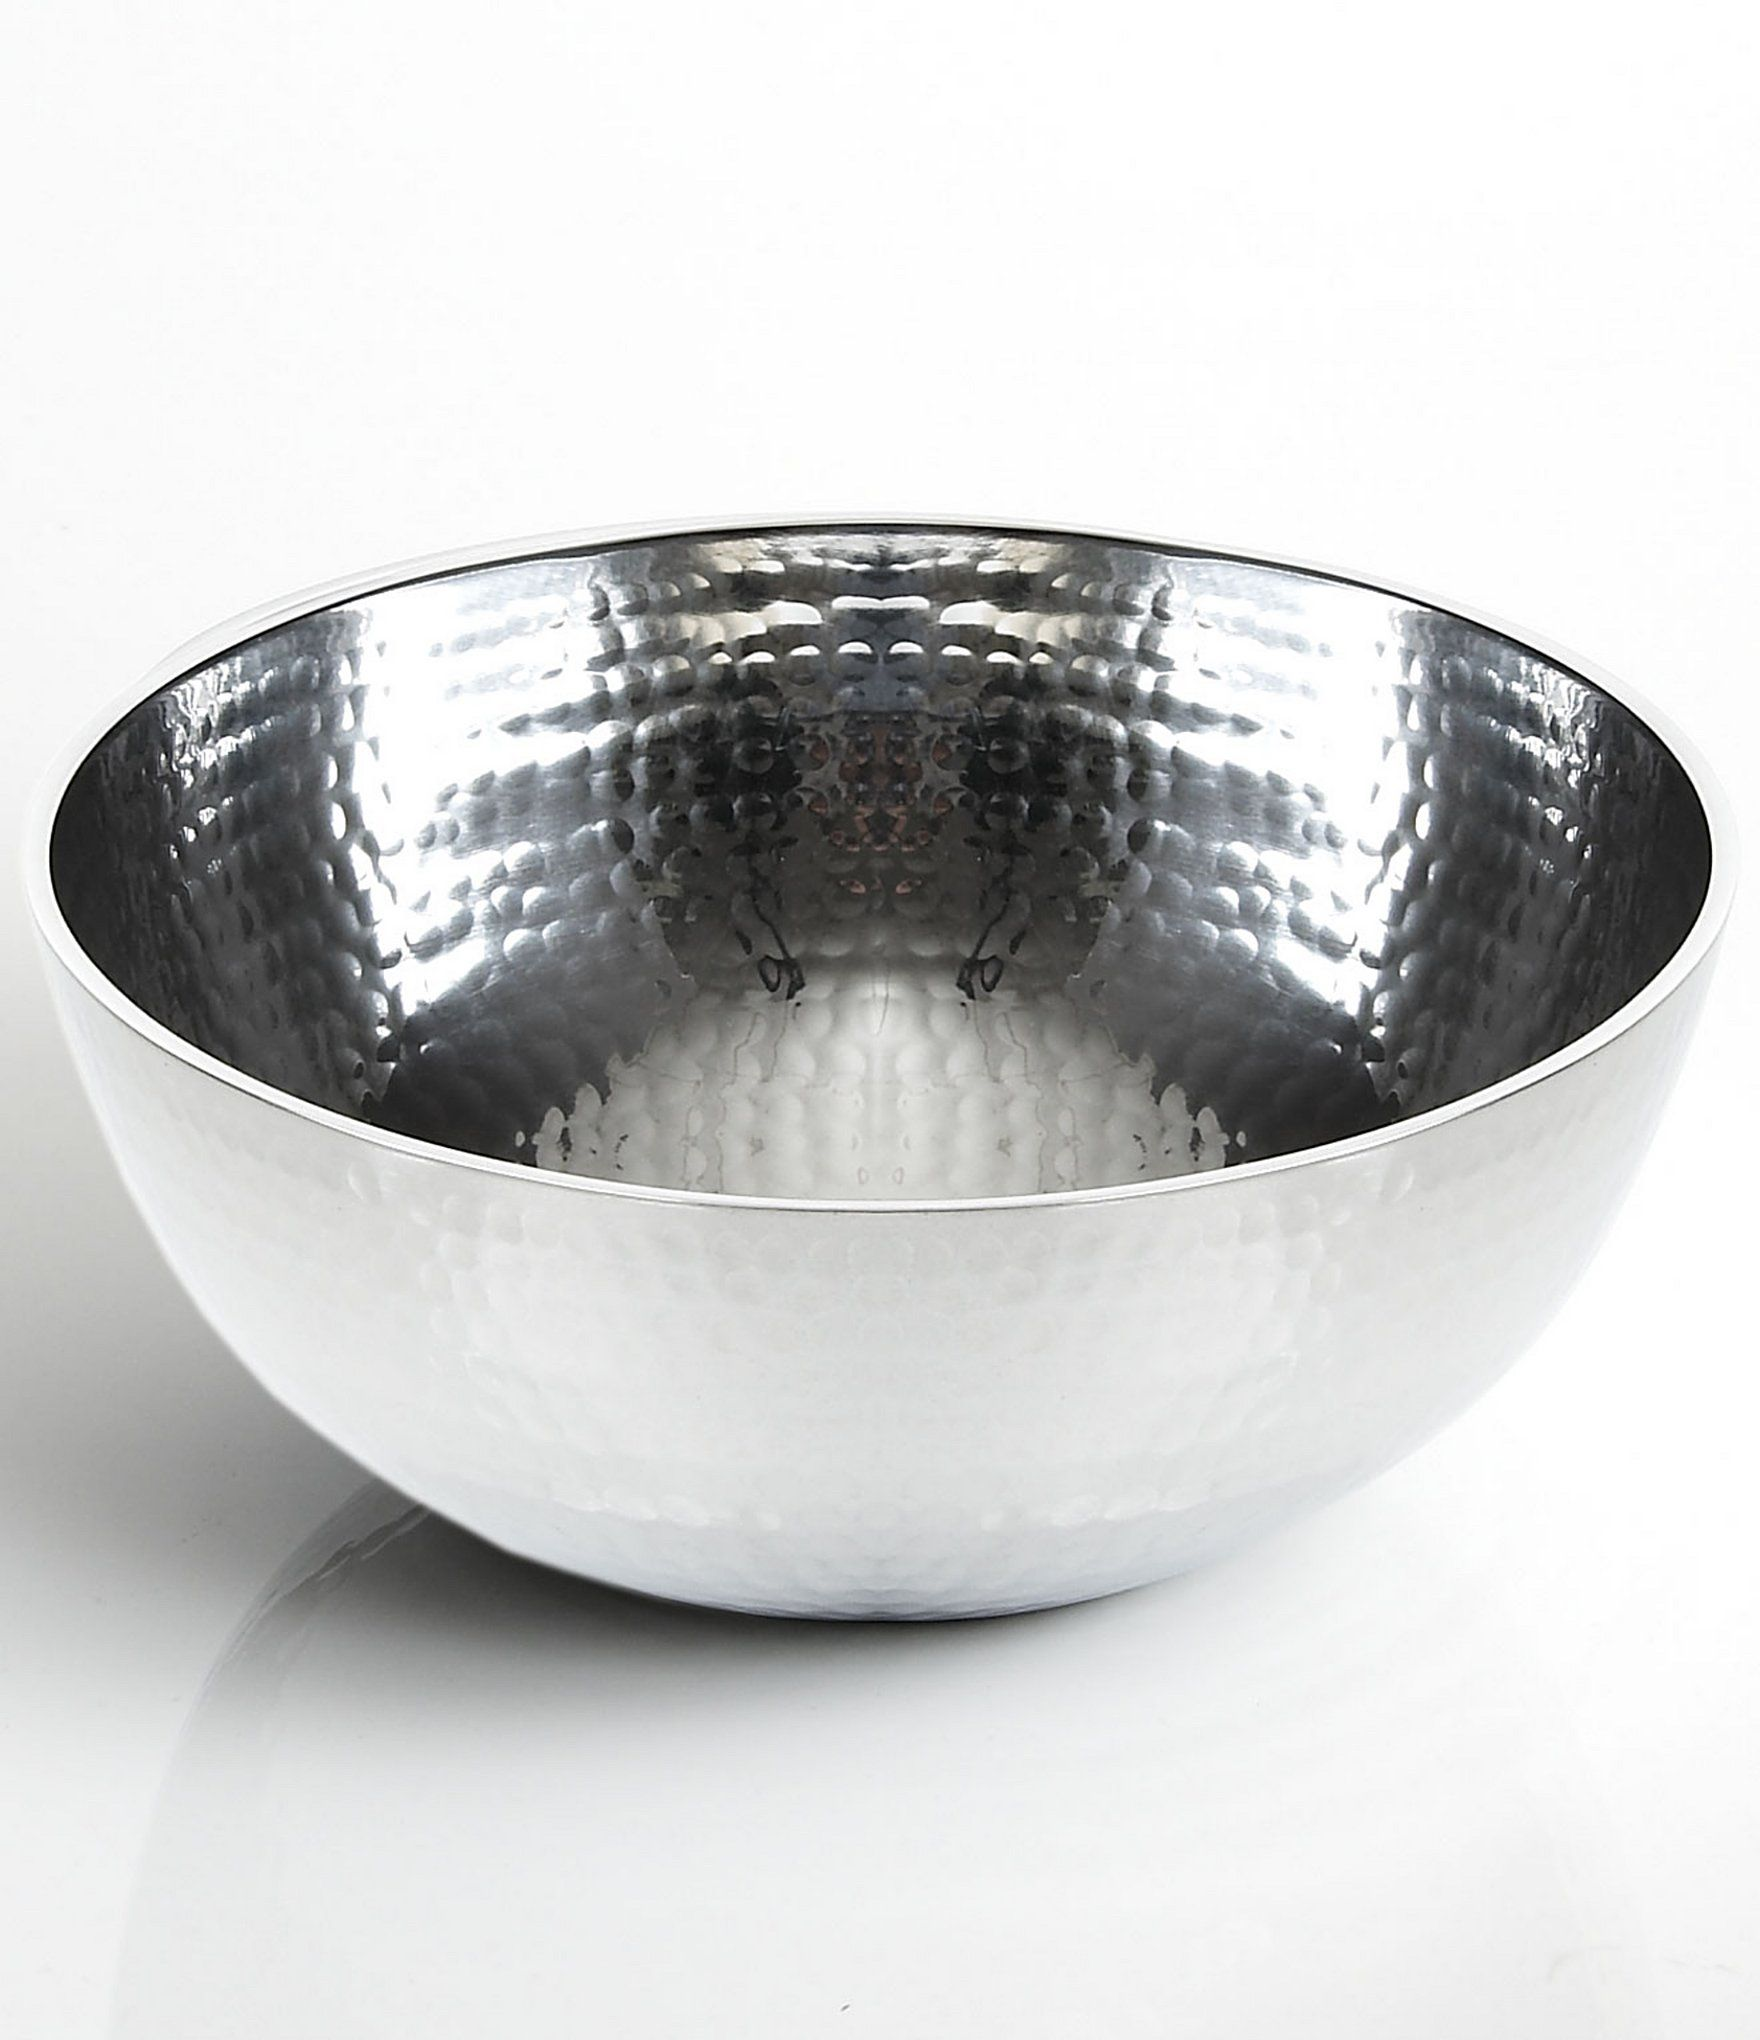 Towle Silversmiths Hammered Medium Serving Bowl Serving Bowls